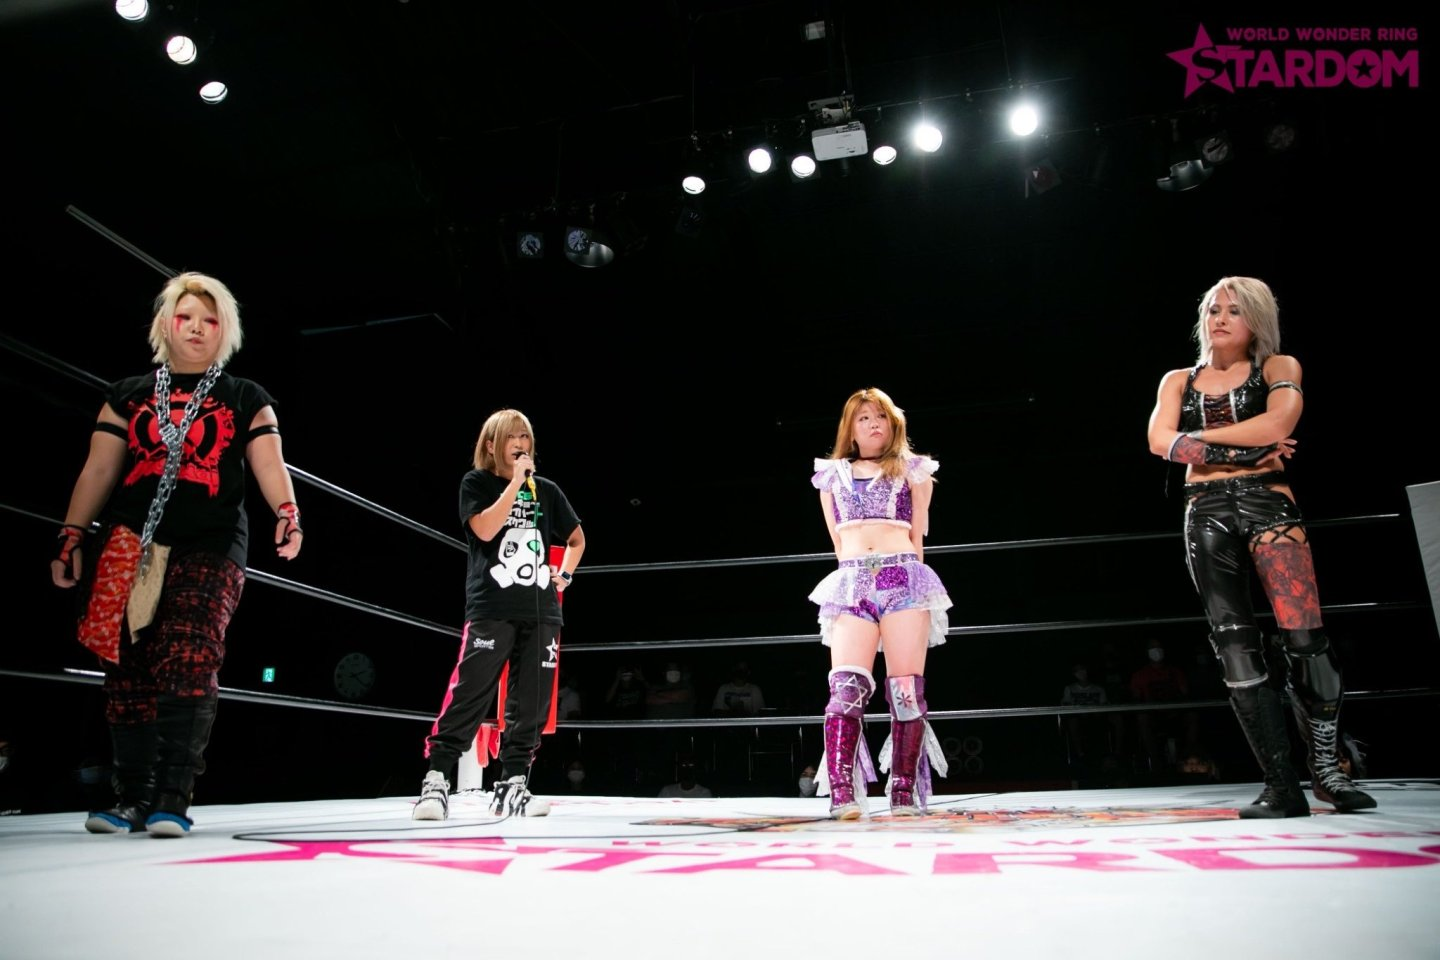 Wonder of Stardom Tournament